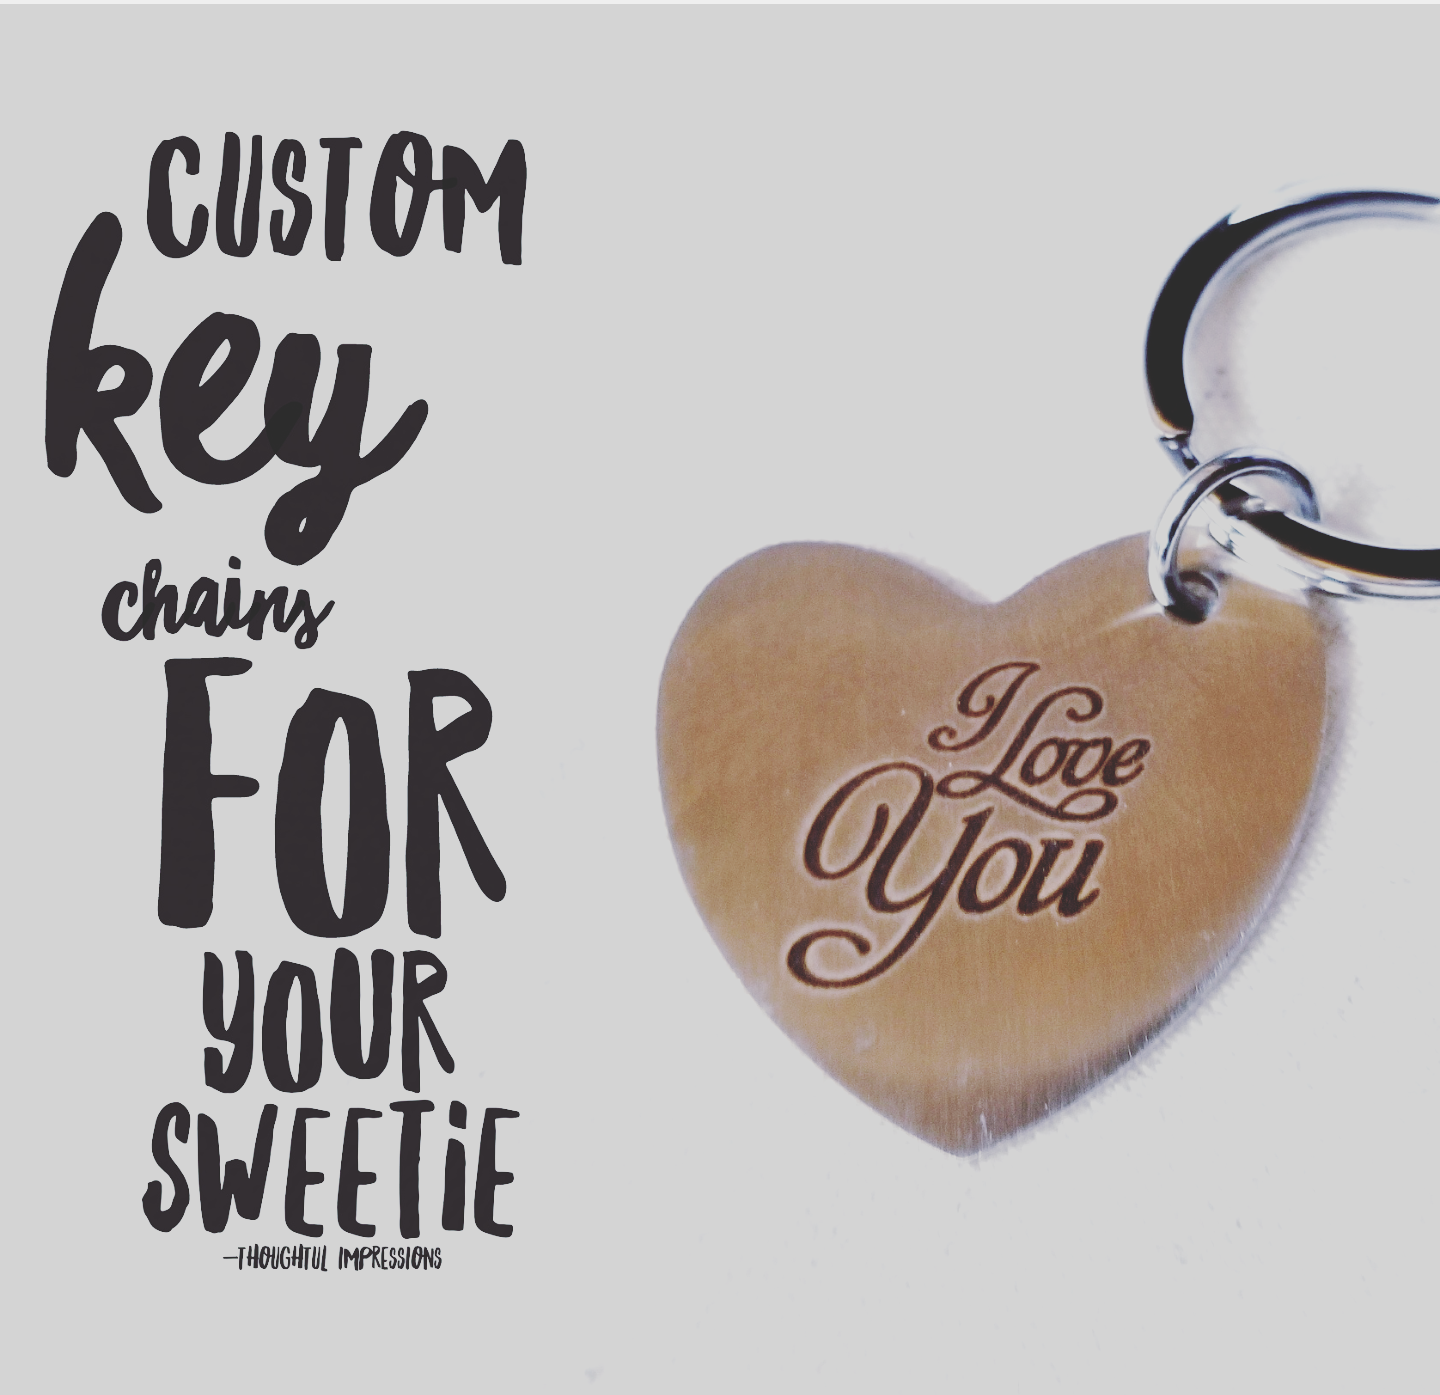 Custom keychains for your sweetie, engraved by Thoughtful